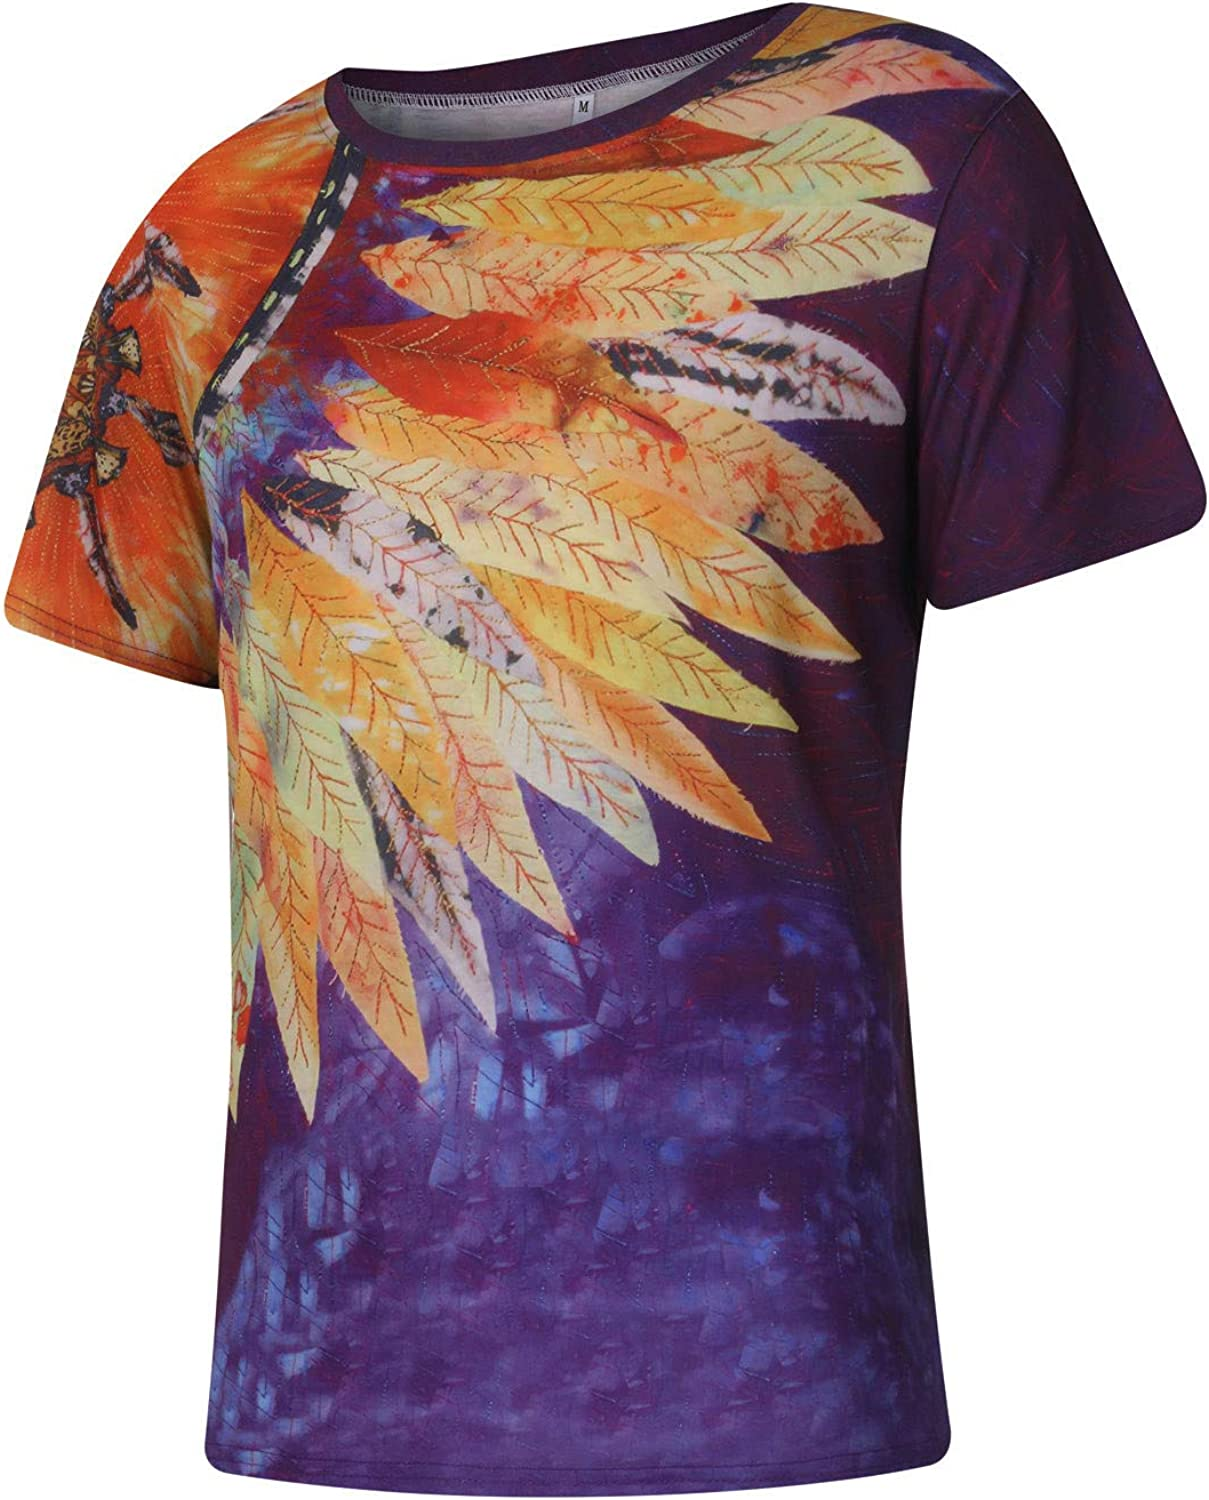 FUNEY Mens Graphic Tees Summer Trendy Short Sleeve Sunflower Workout Shirts Fashion 3D Print Tie Dye Mens Shirts Casual